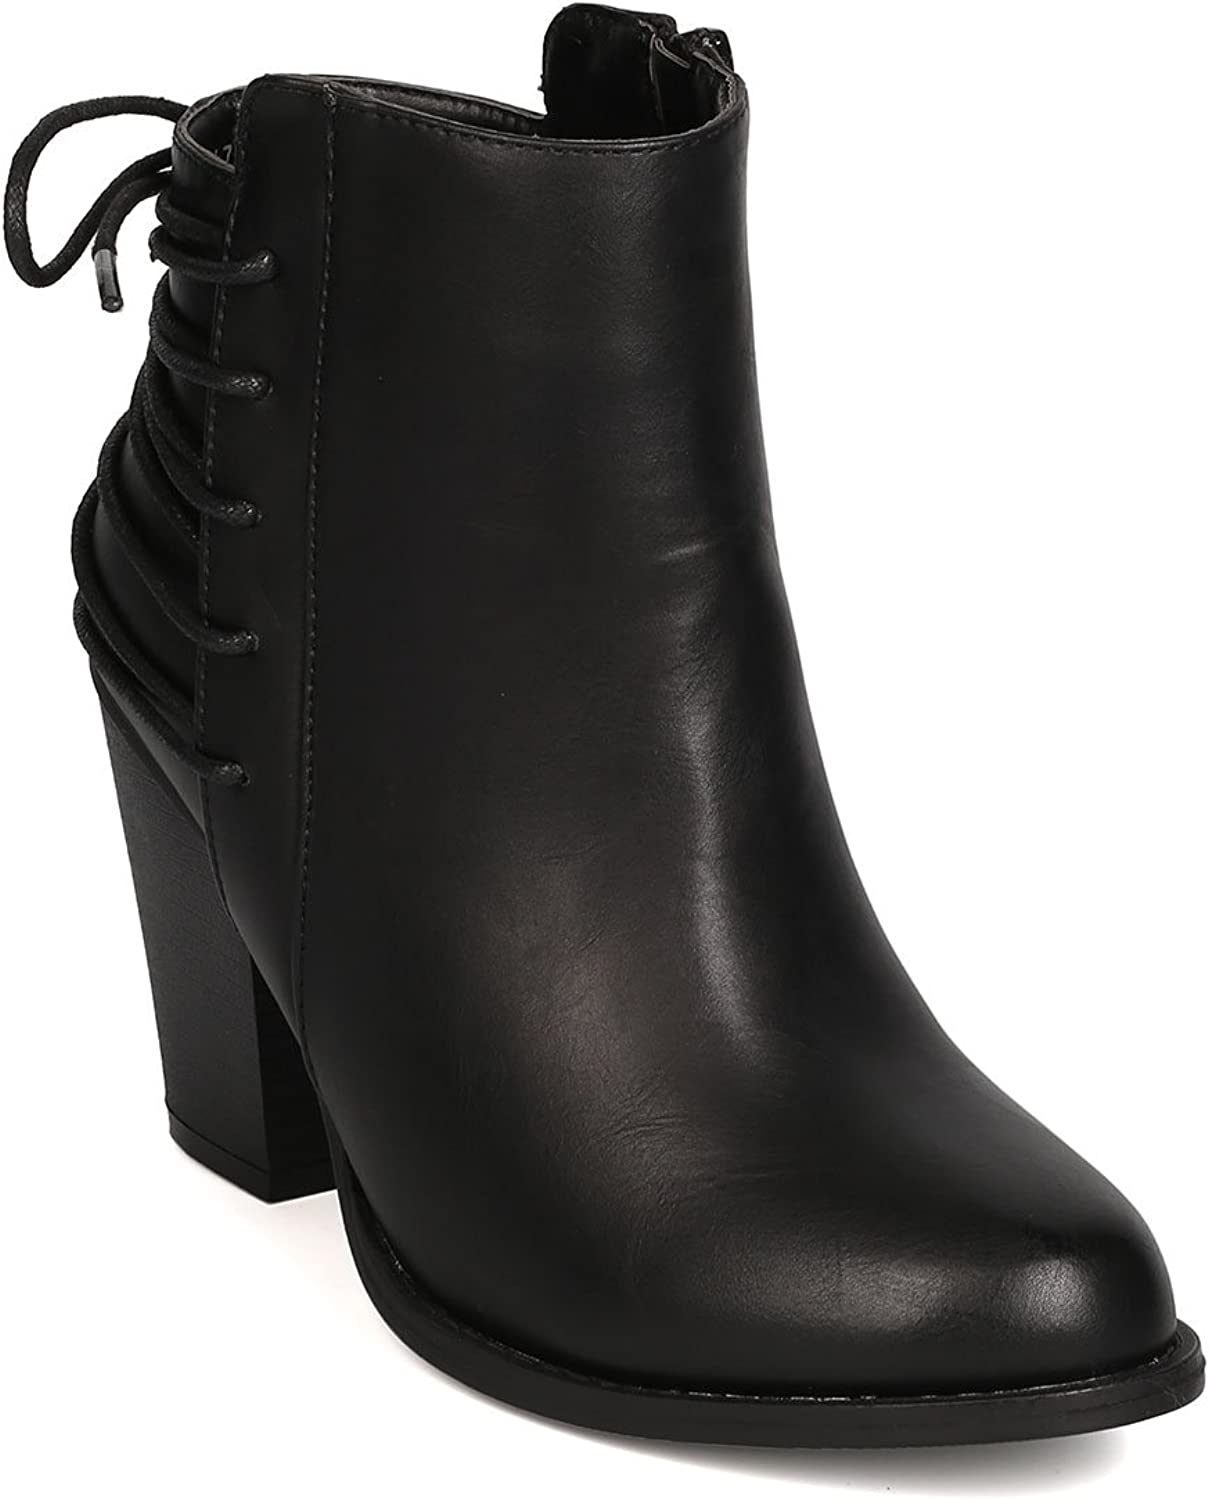 Women Leatherette Back Lace Up Chunky Heel Bootie FG41 - Black